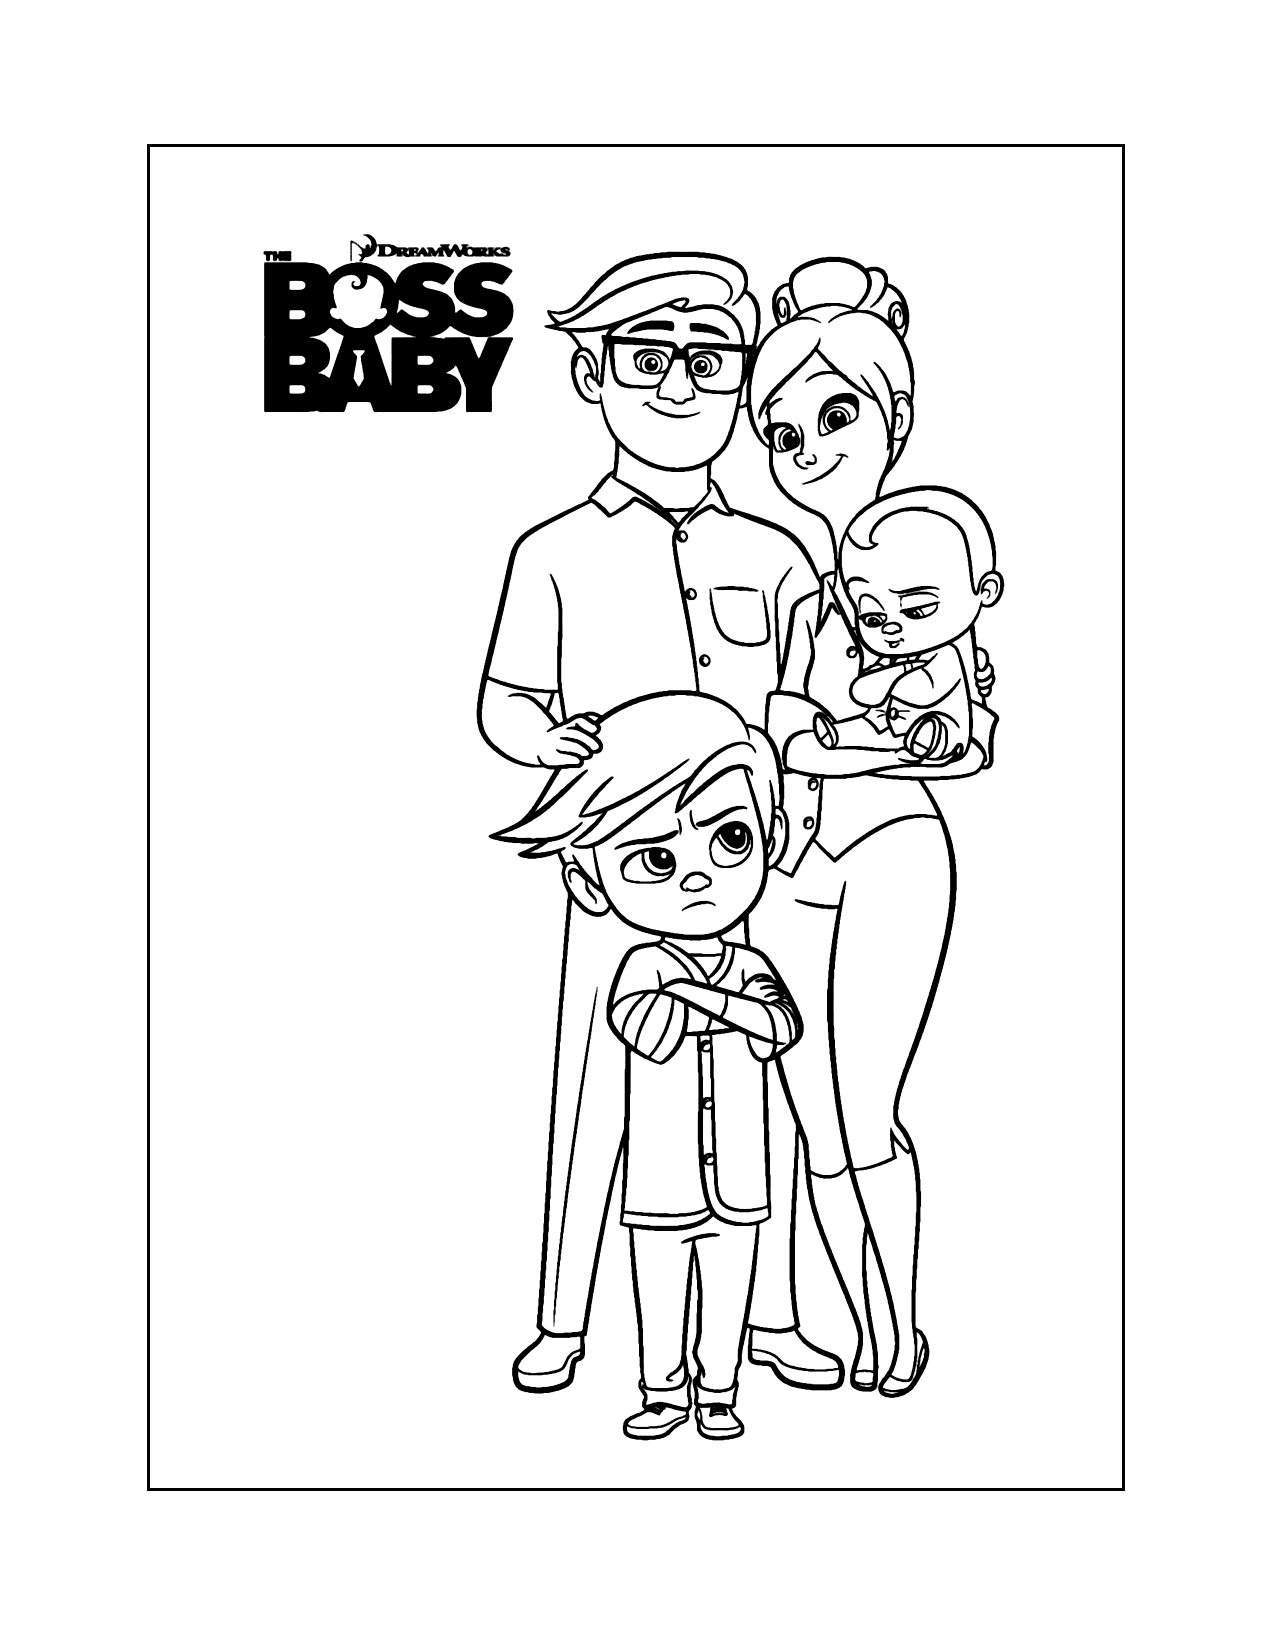 Boss Baby Family Coloring Pages